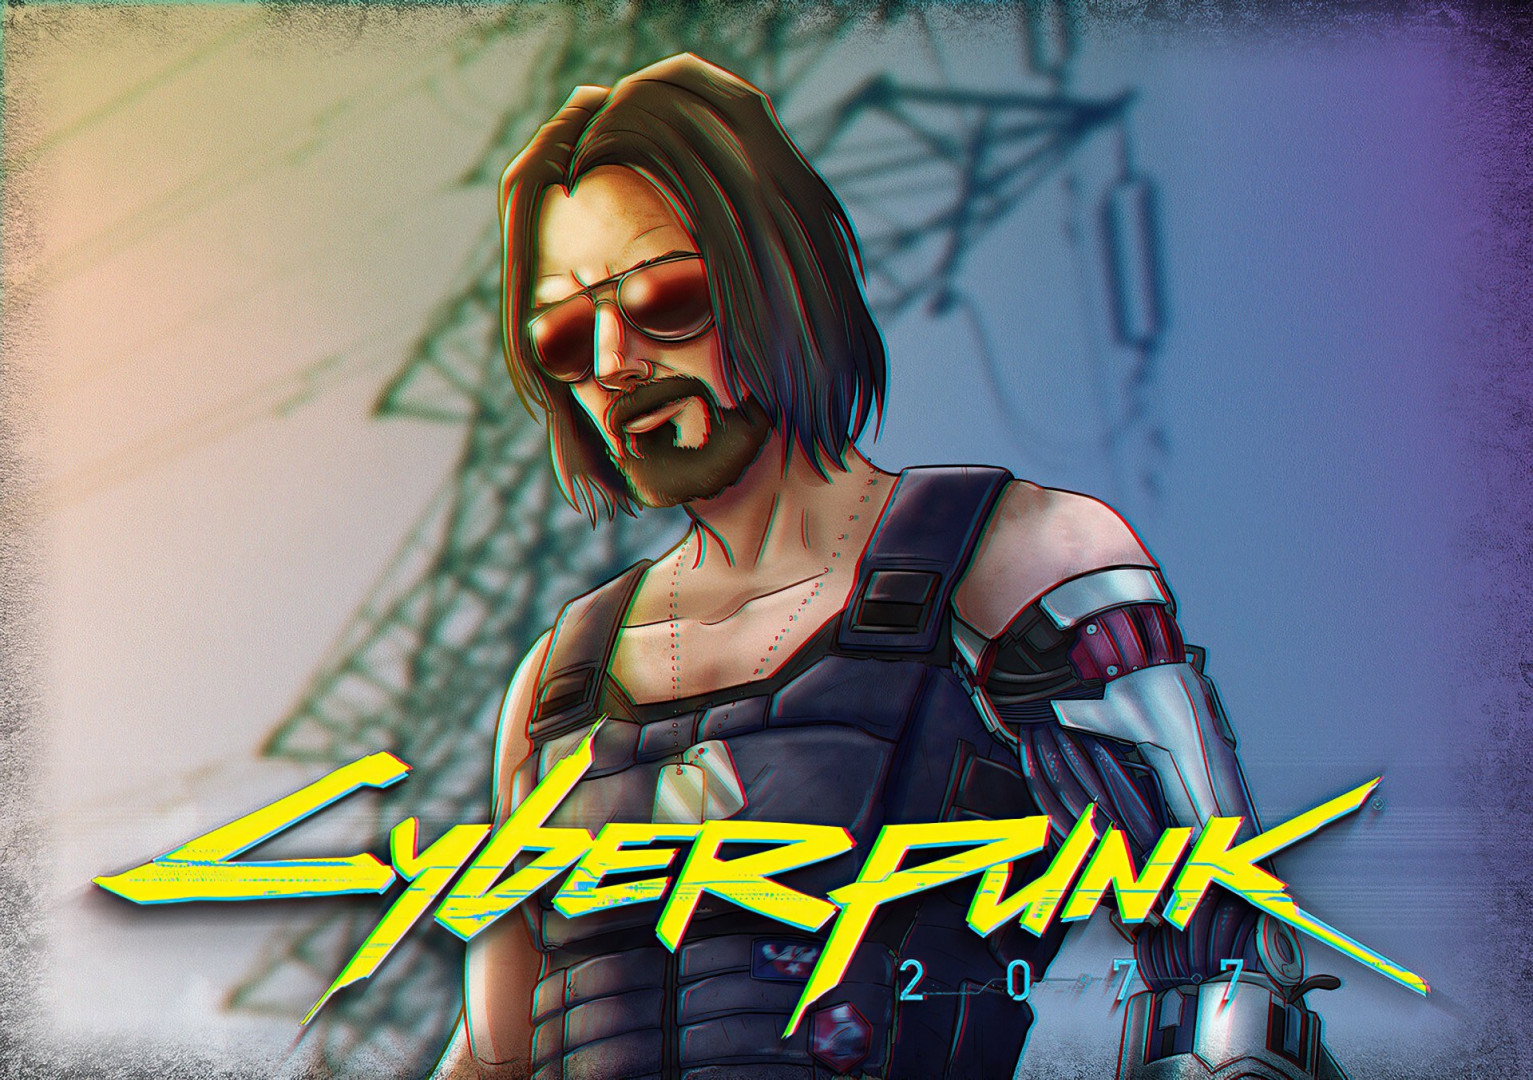 Important Things To Know About Cyberpunk 2077